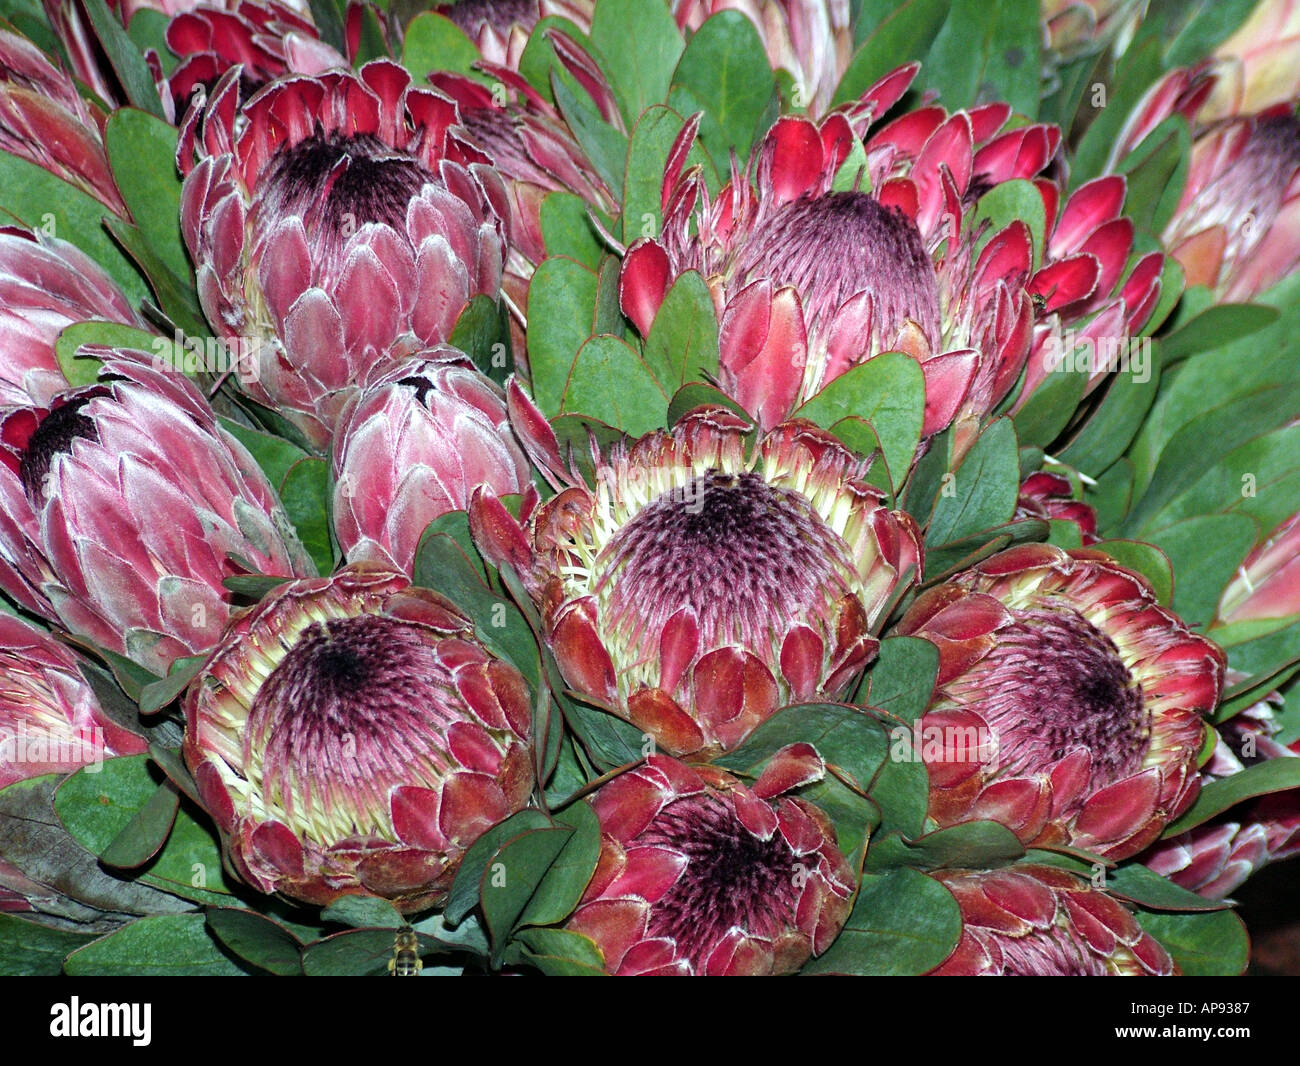 flowers for sale south africa stock photos flowers for sale south